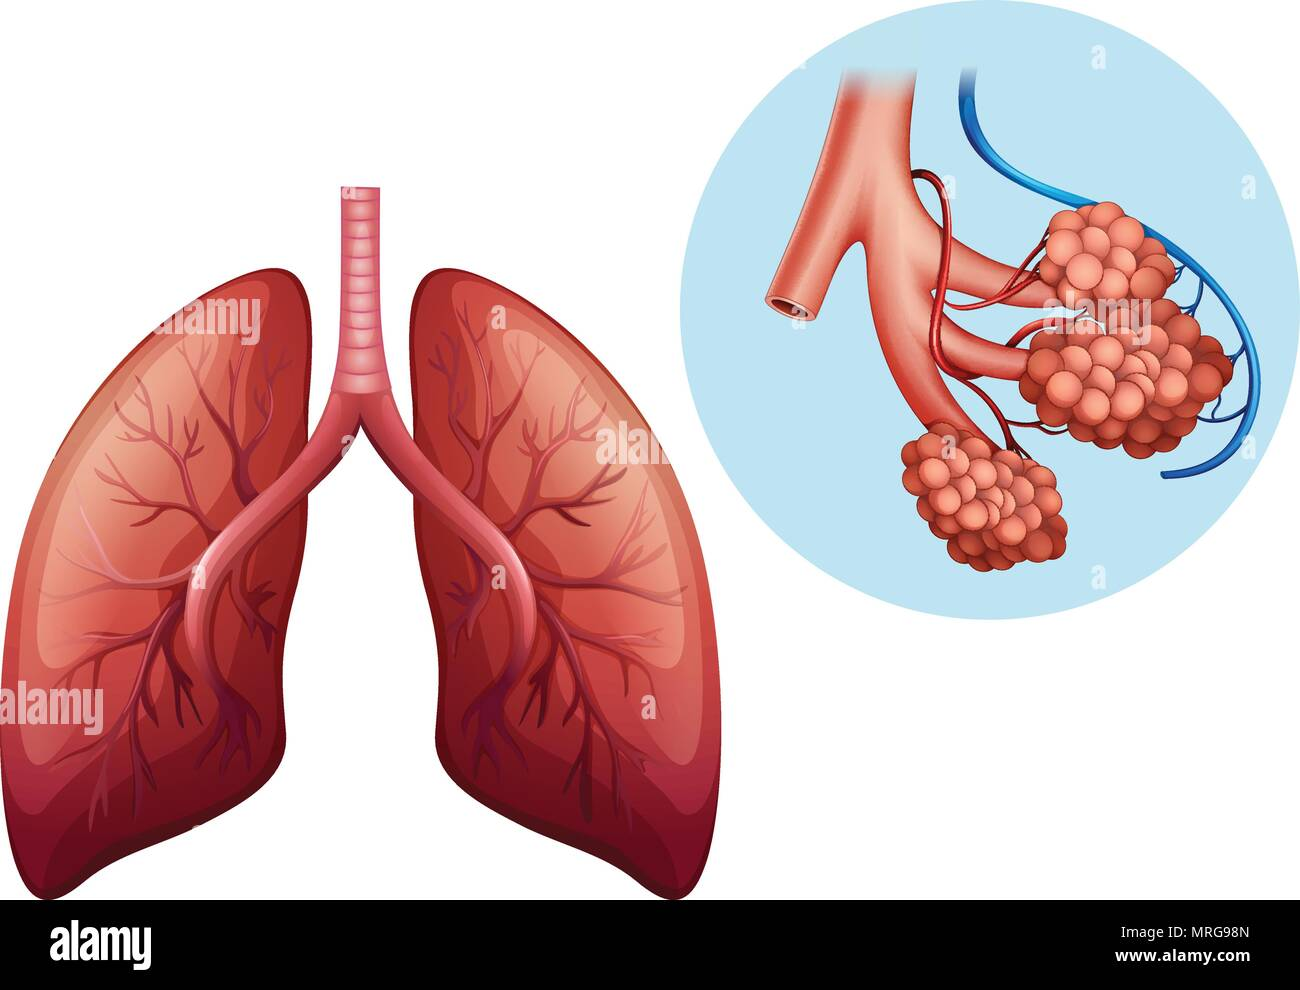 Human Anatomy Of Human Lung Illustration Stock Vector Art